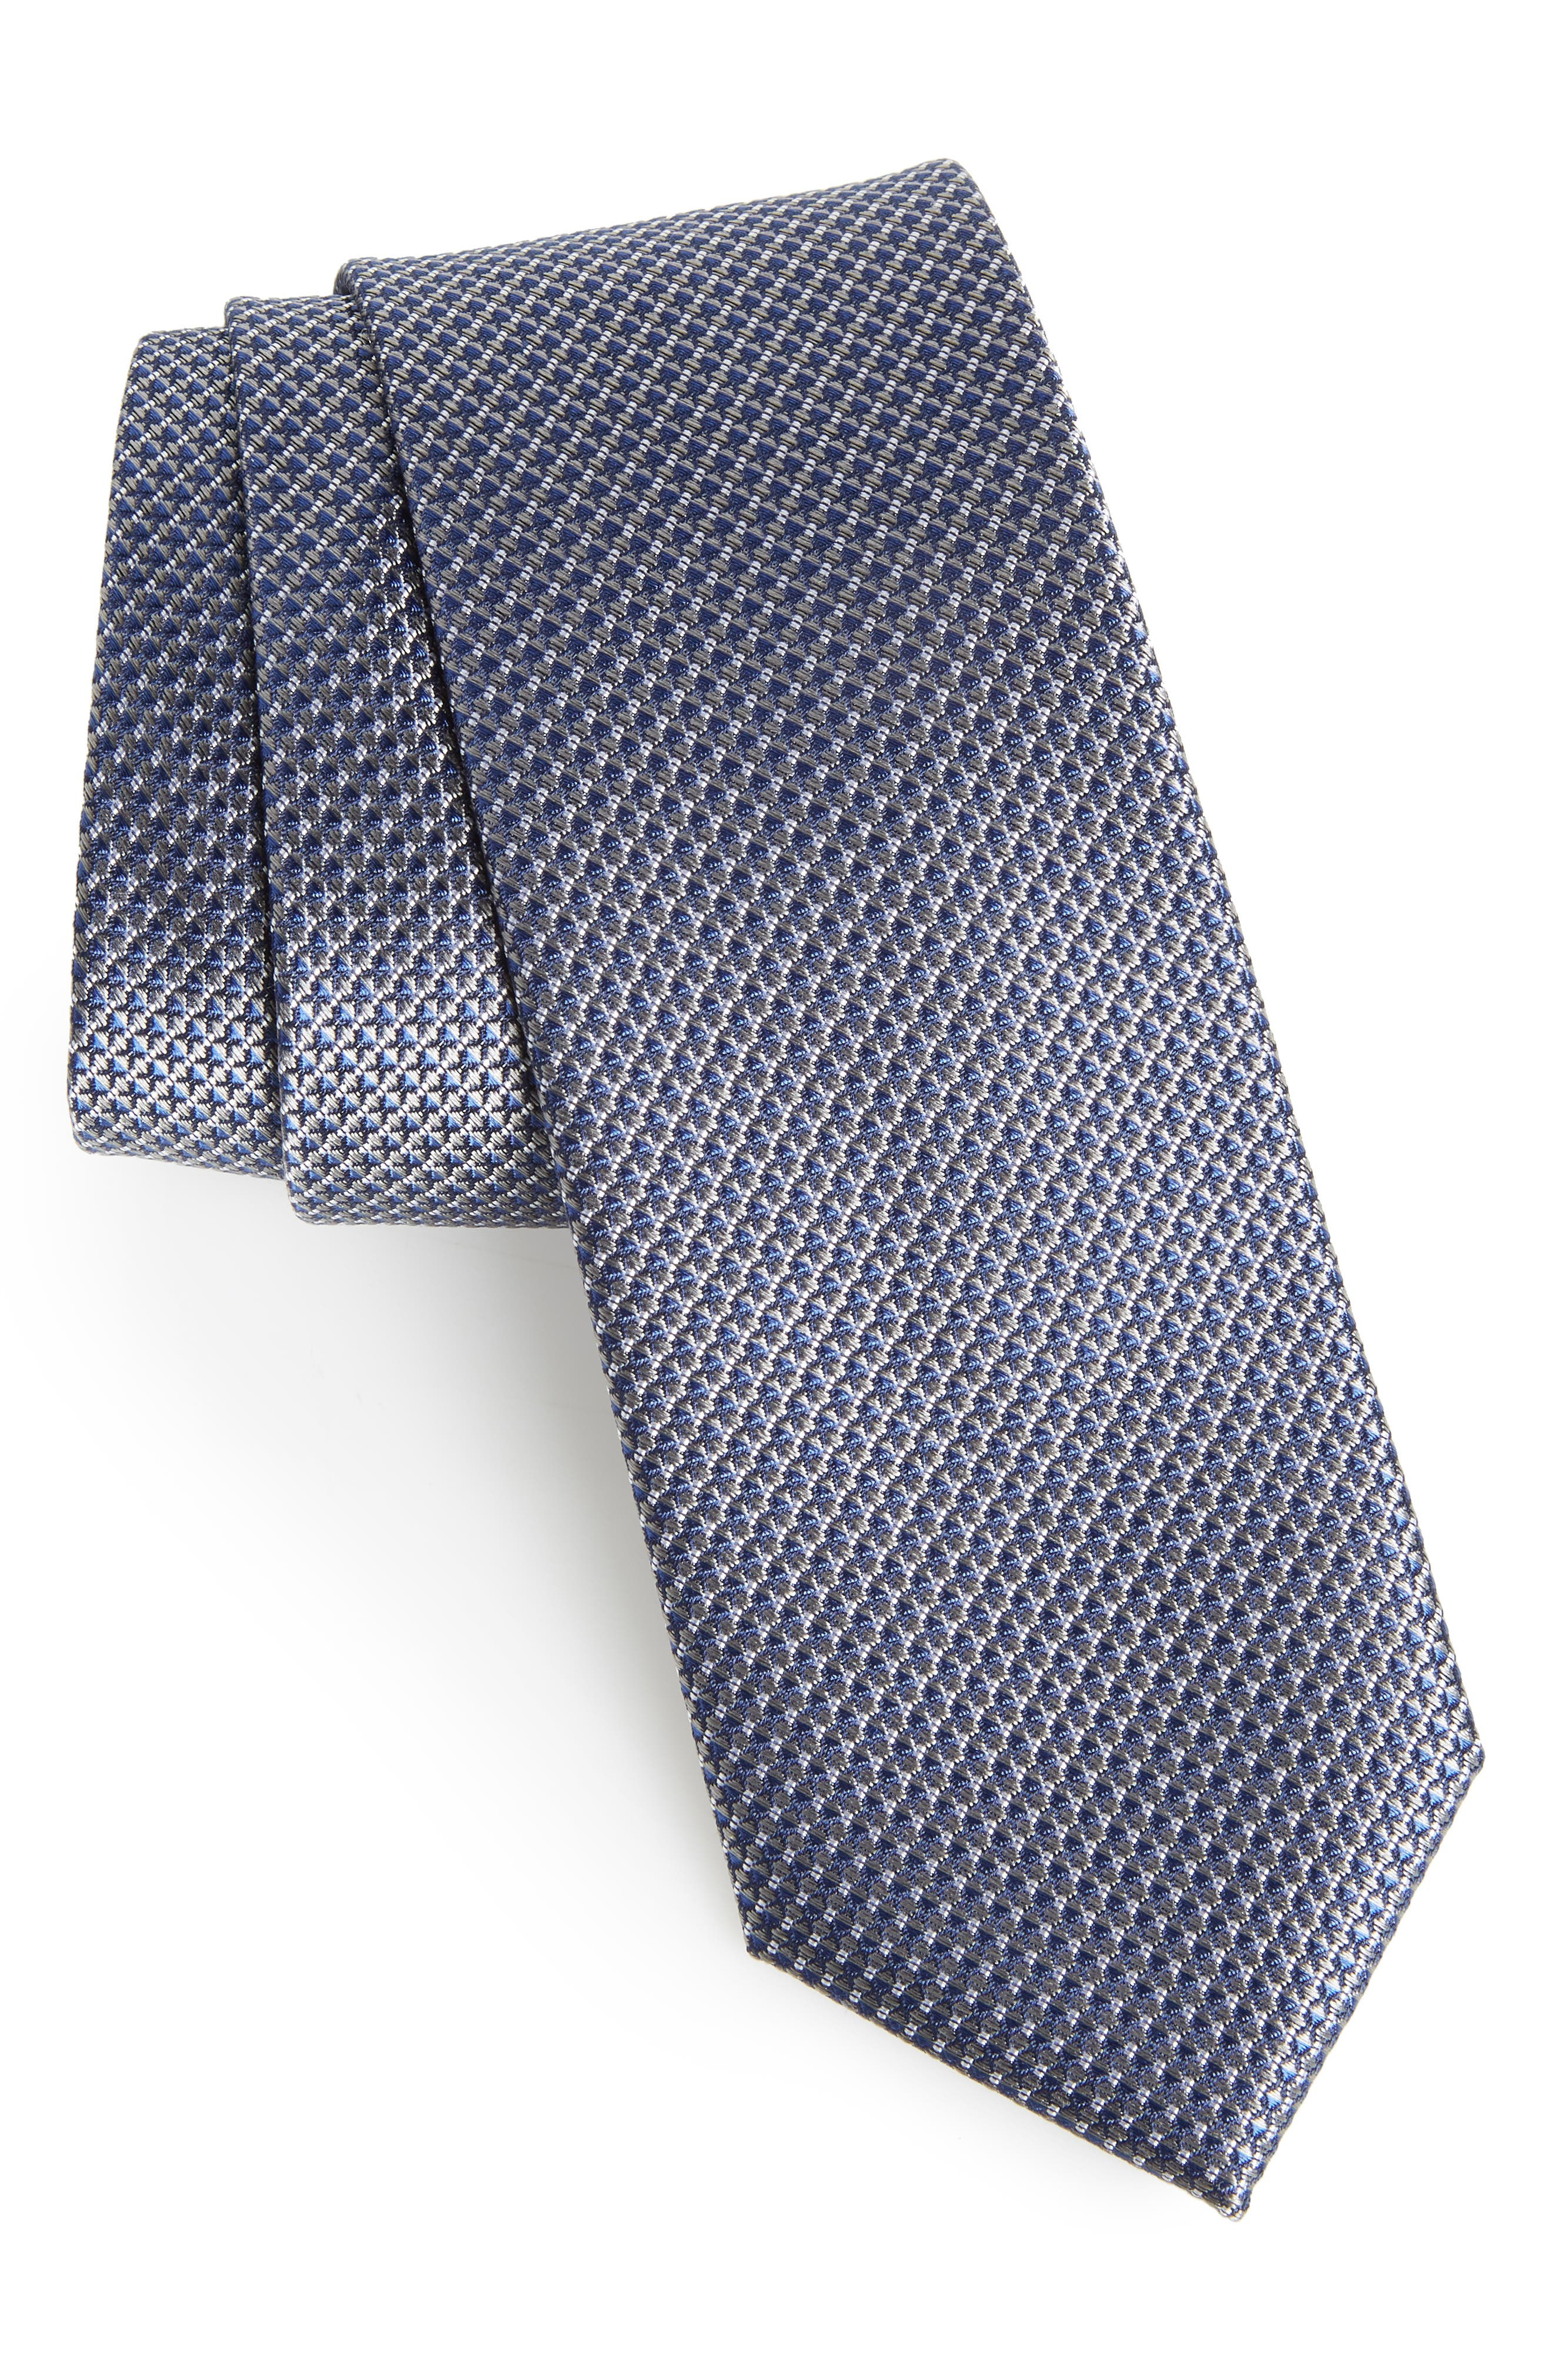 Anser Solid Silk Tie,                         Main,                         color, CHARCOAL